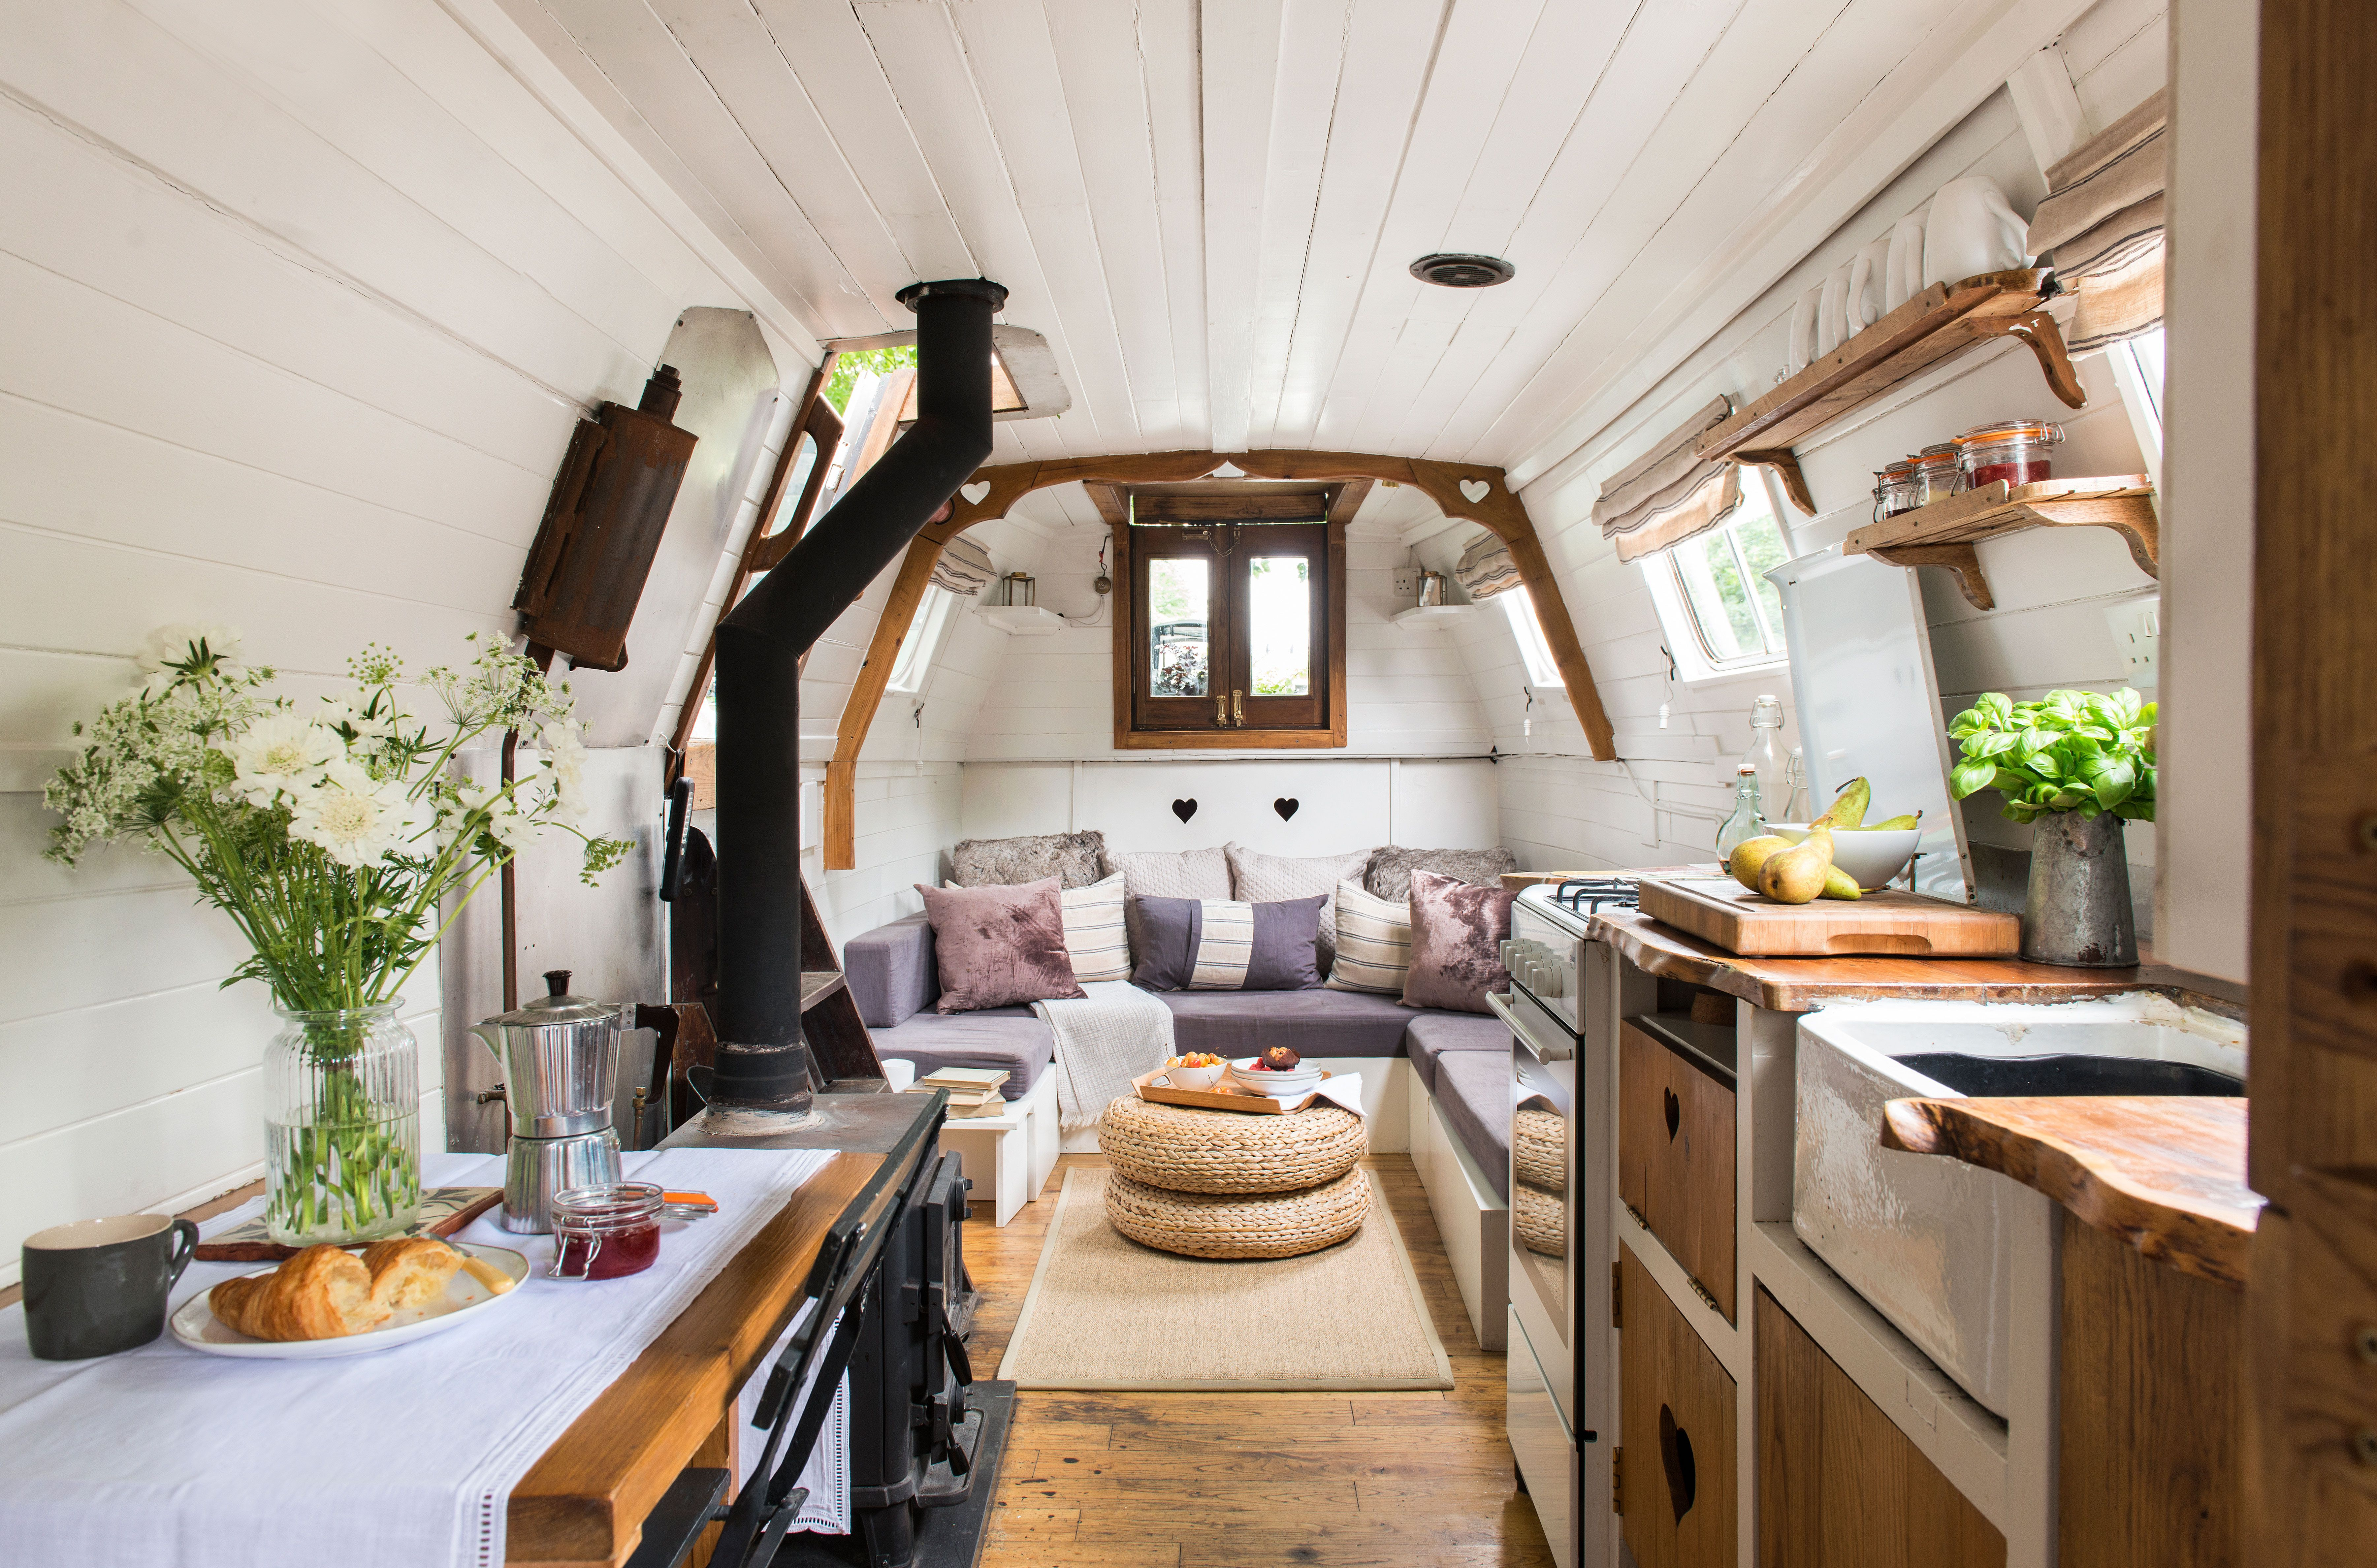 Charming Century Old Narrowboat Makes Stylish Use Of Every Inch Of Space